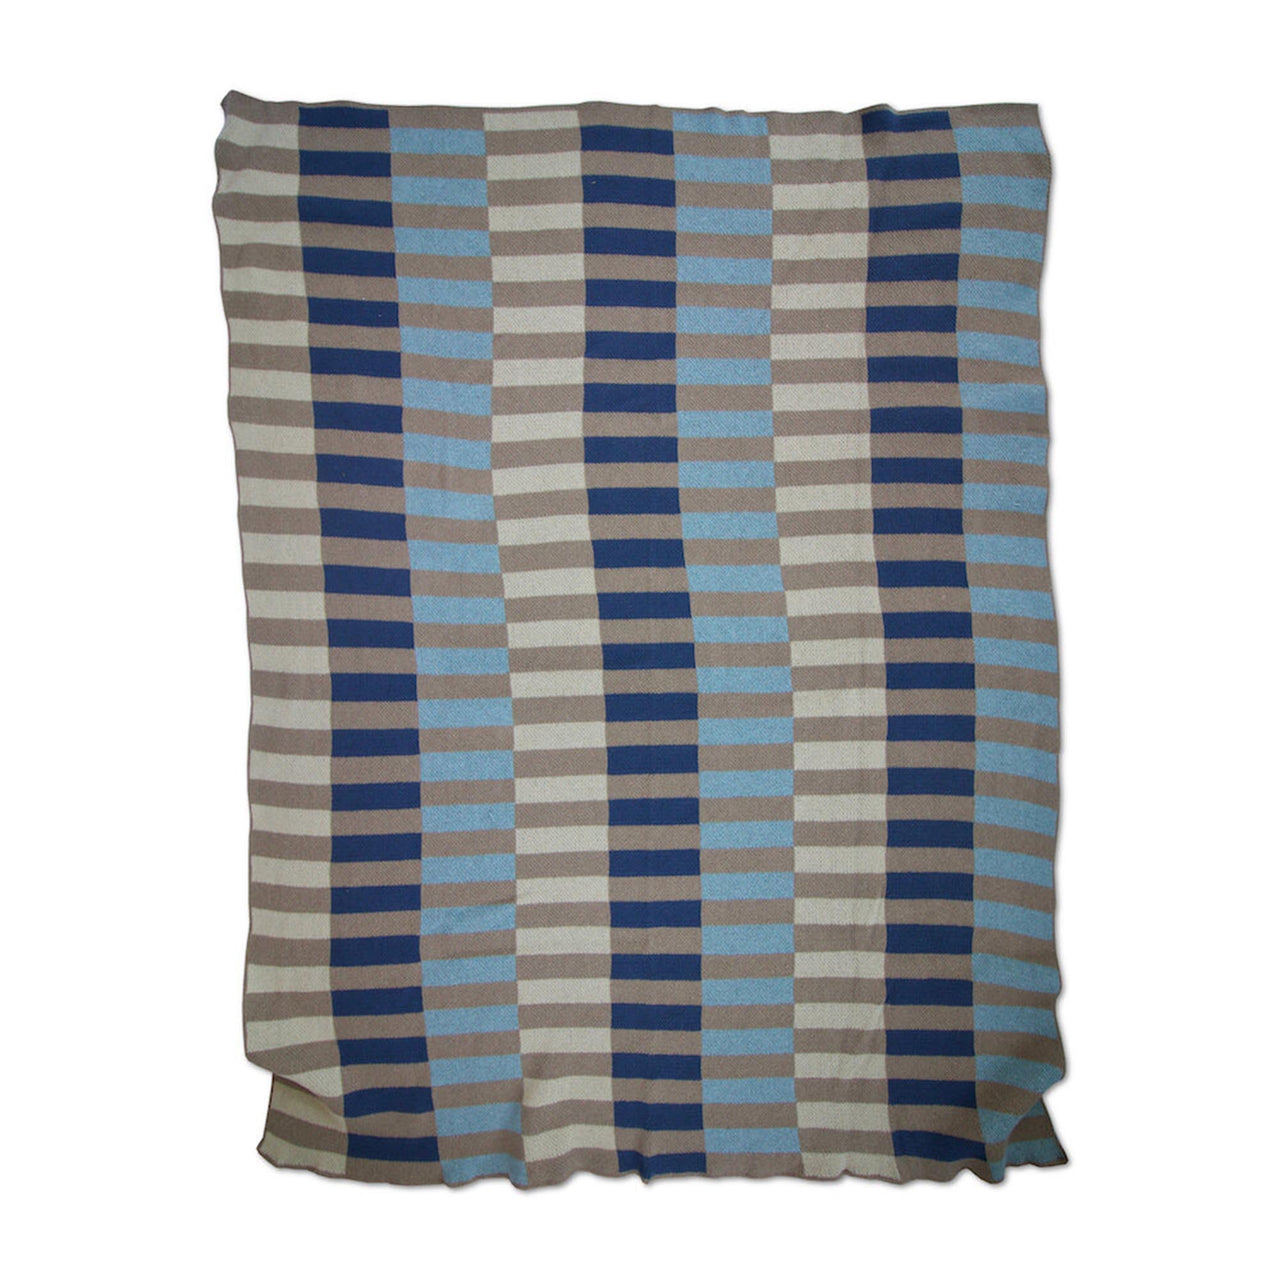 Lanai Knit Throw Blanket in Blues